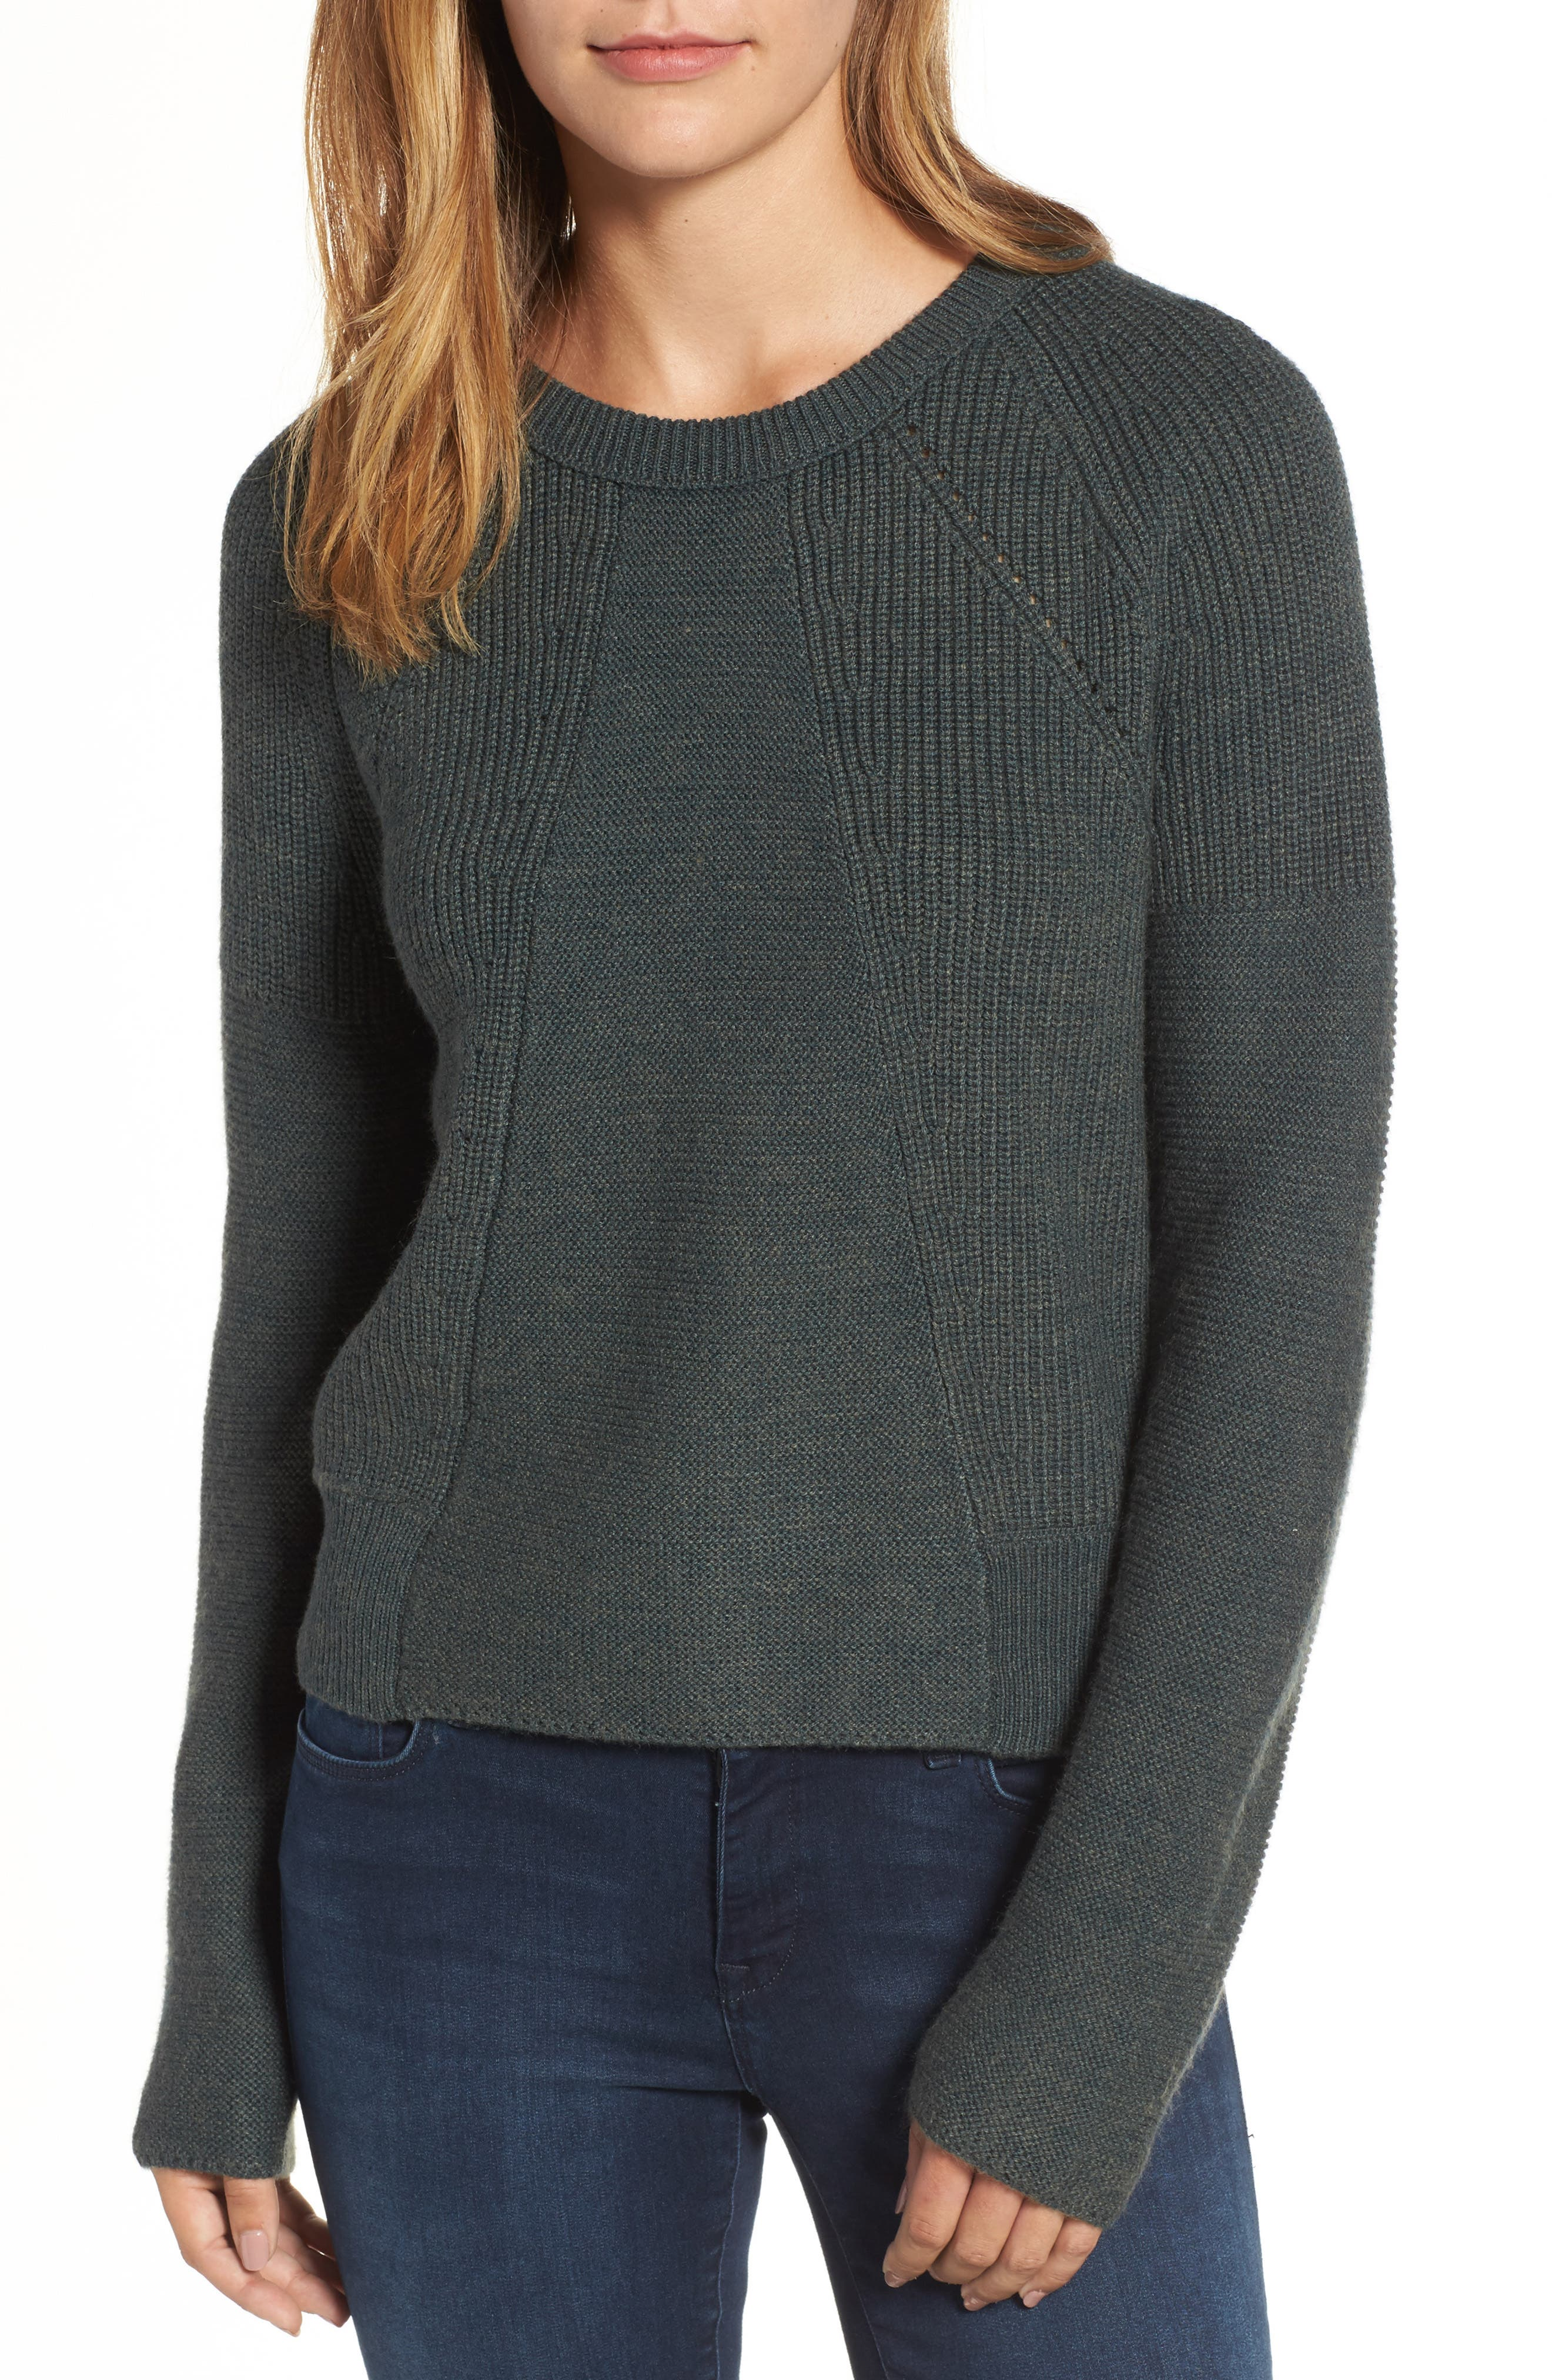 Velvet by Graham & Spencer Engineered Stitch Sweater